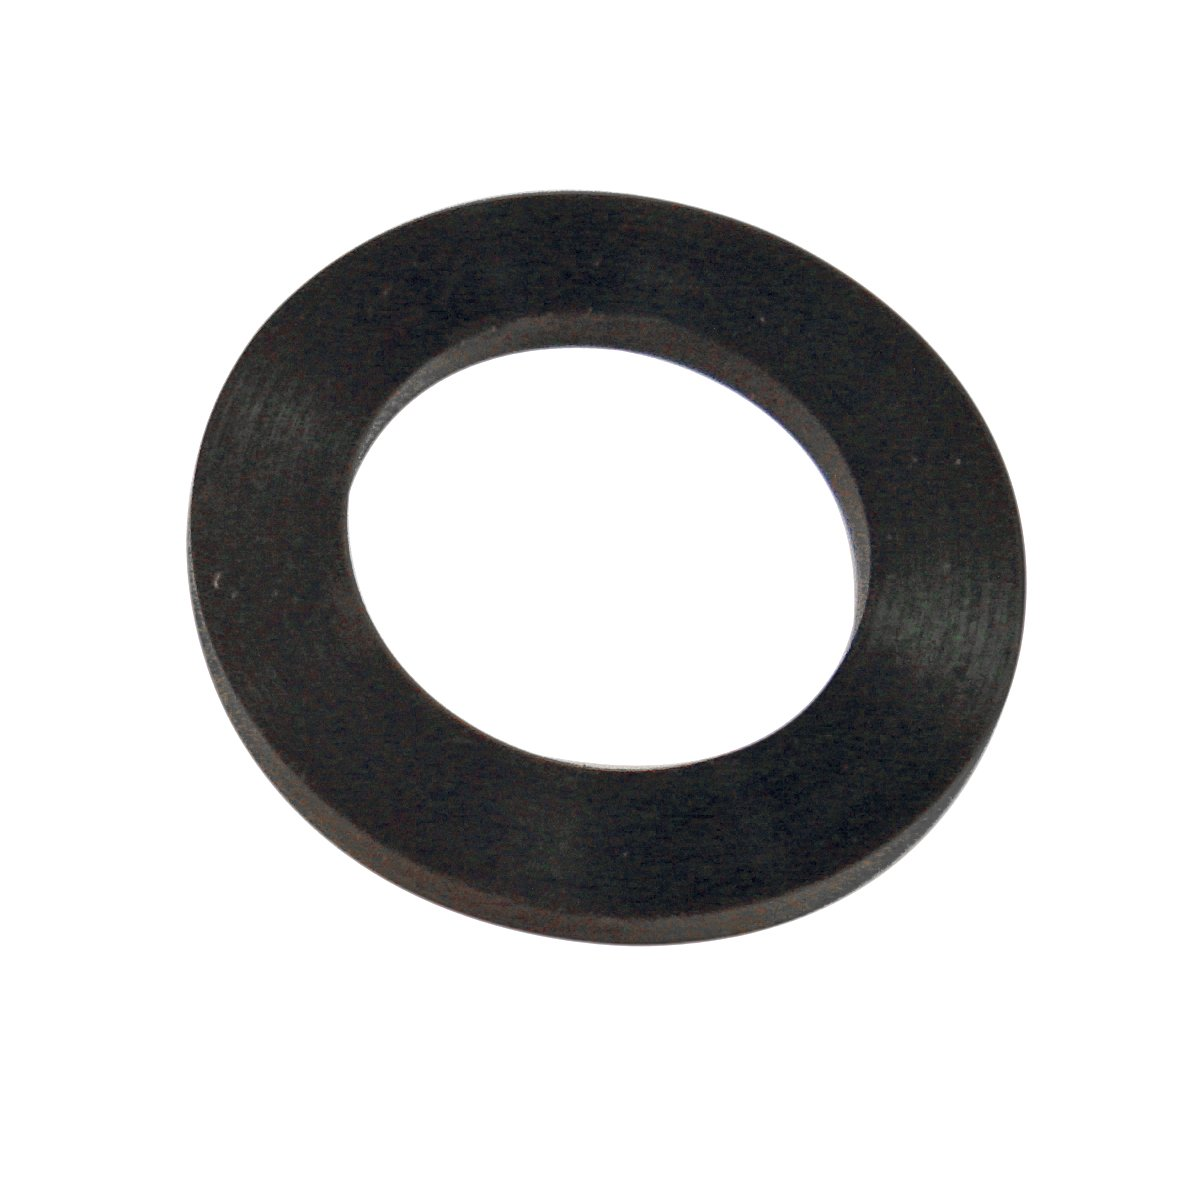 Danco 1-3/16 in. O.D. Standard Size Union Washer, 10 Pack, 60093Z